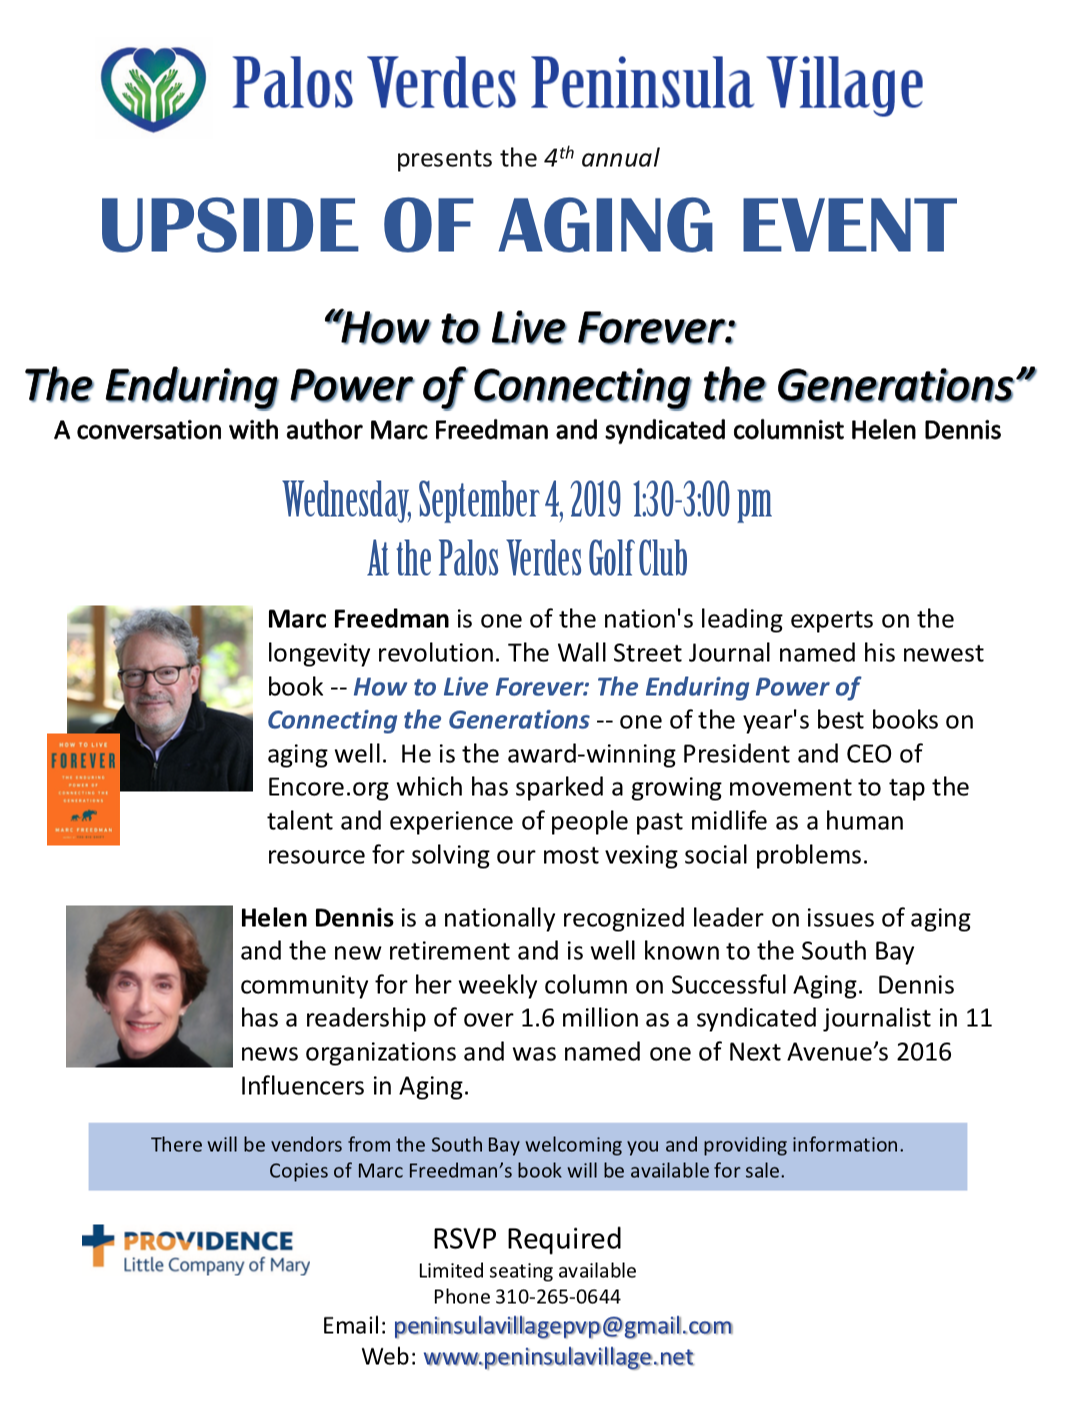 Upside of Aging flyer 2019